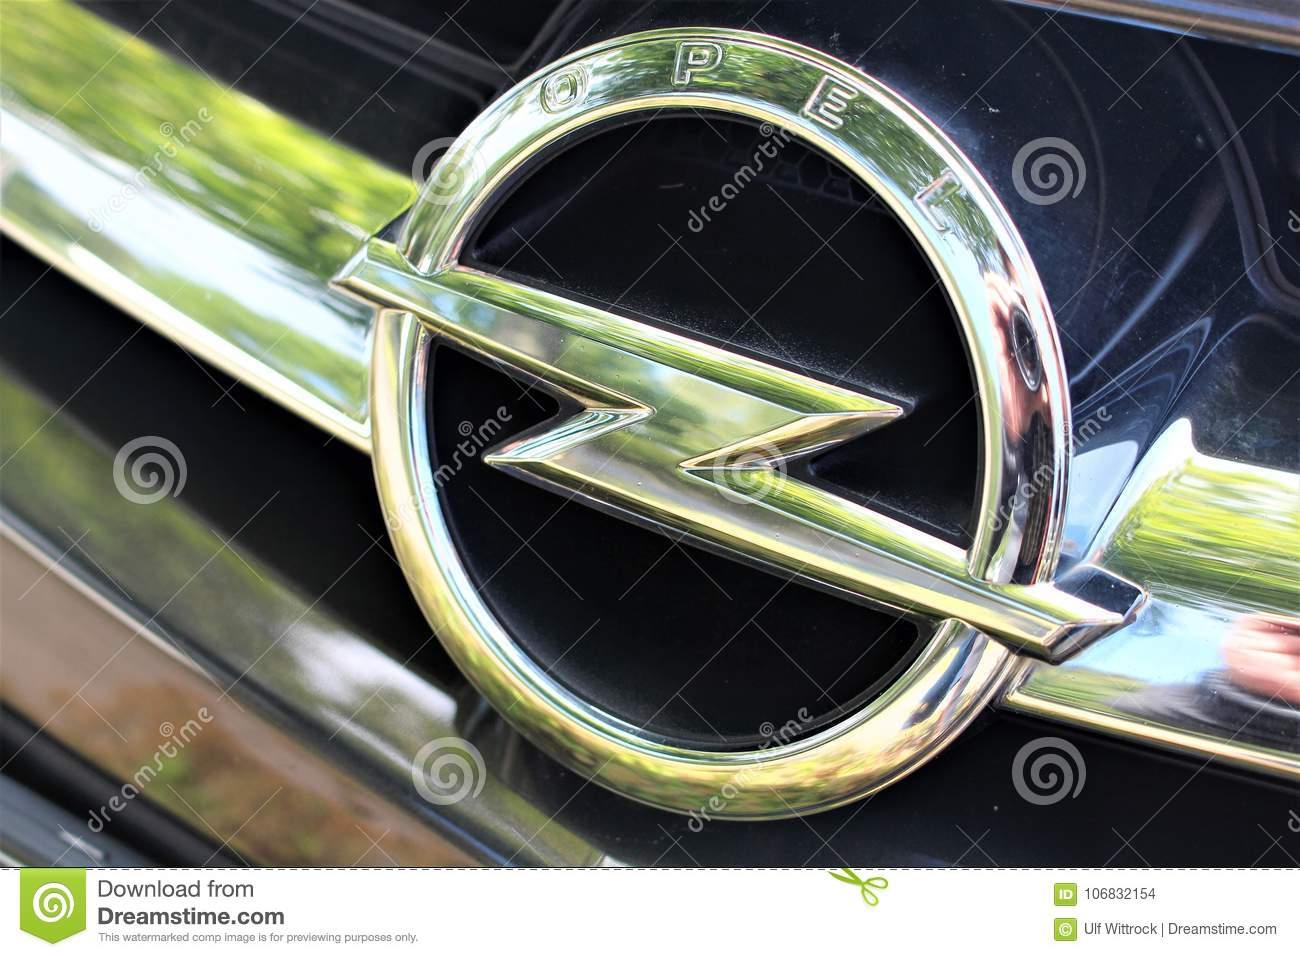 hight resolution of an image of a opel logo bielefeld germany 09 16 2017